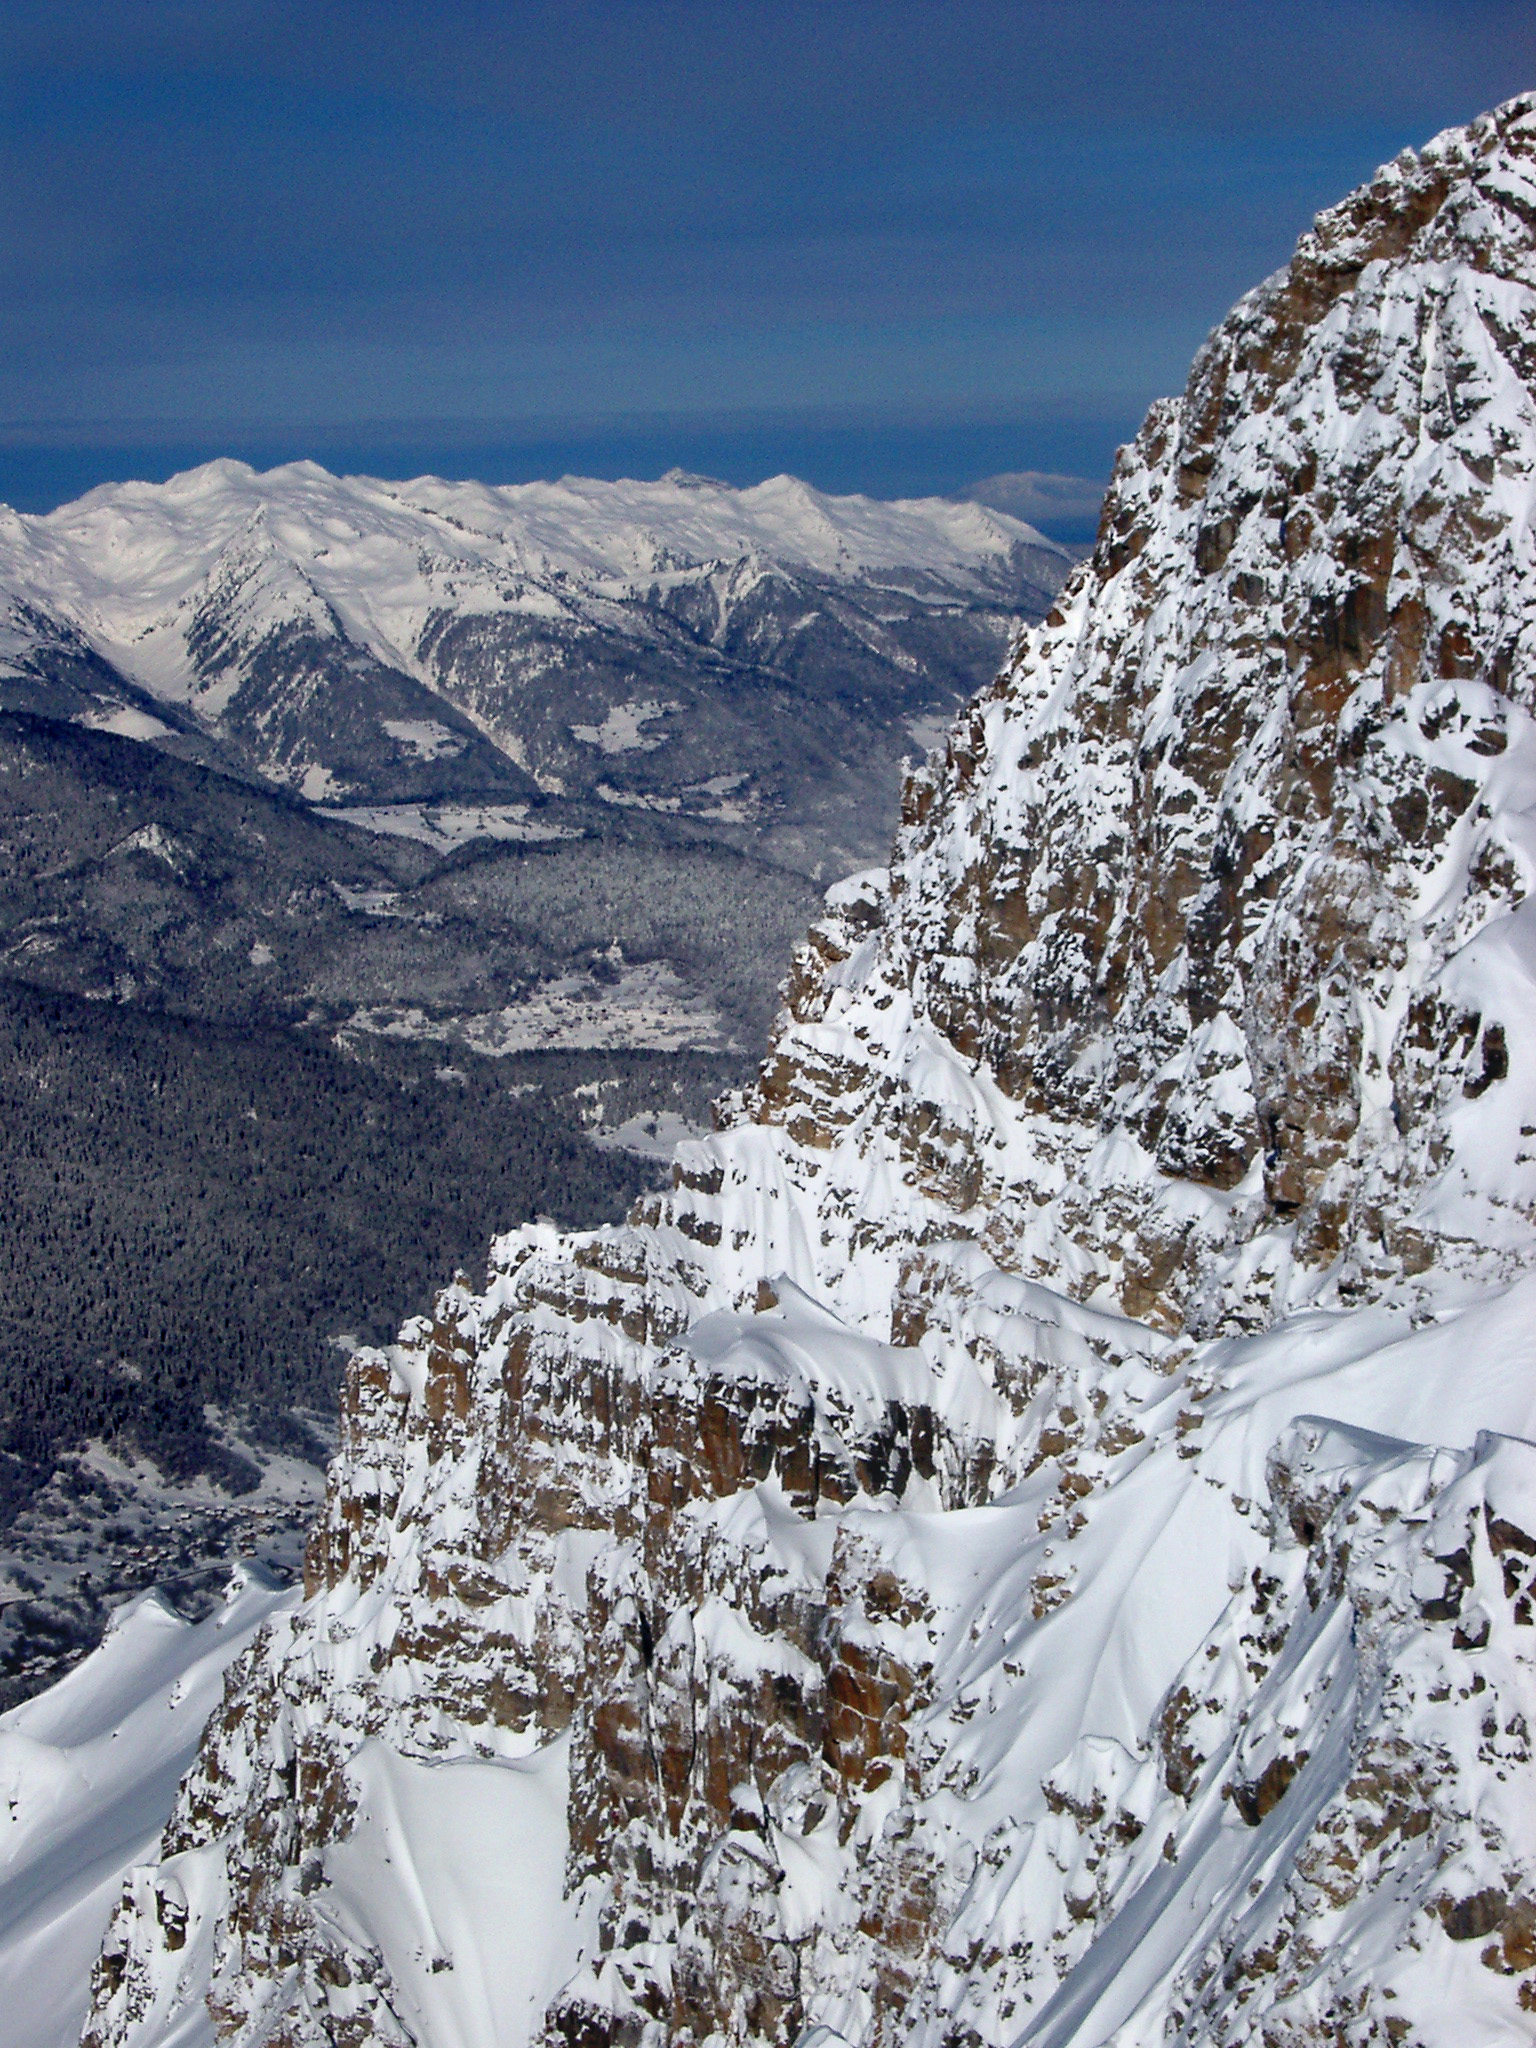 Beautiful View of Huge French Mountains Covered with Snow During Winter Holiday Season.